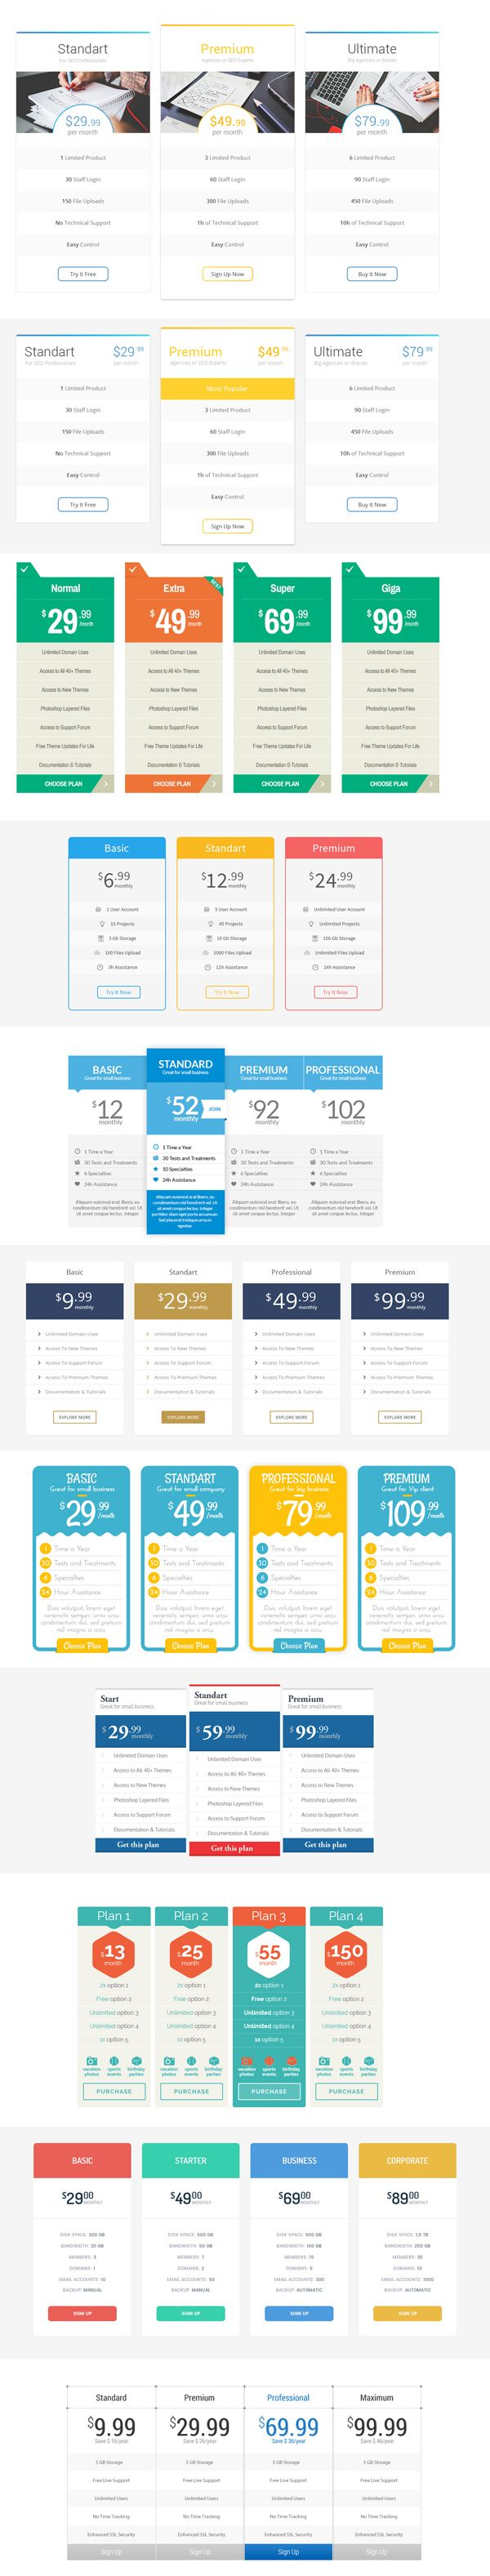 services web banner templates set price list buy book and real